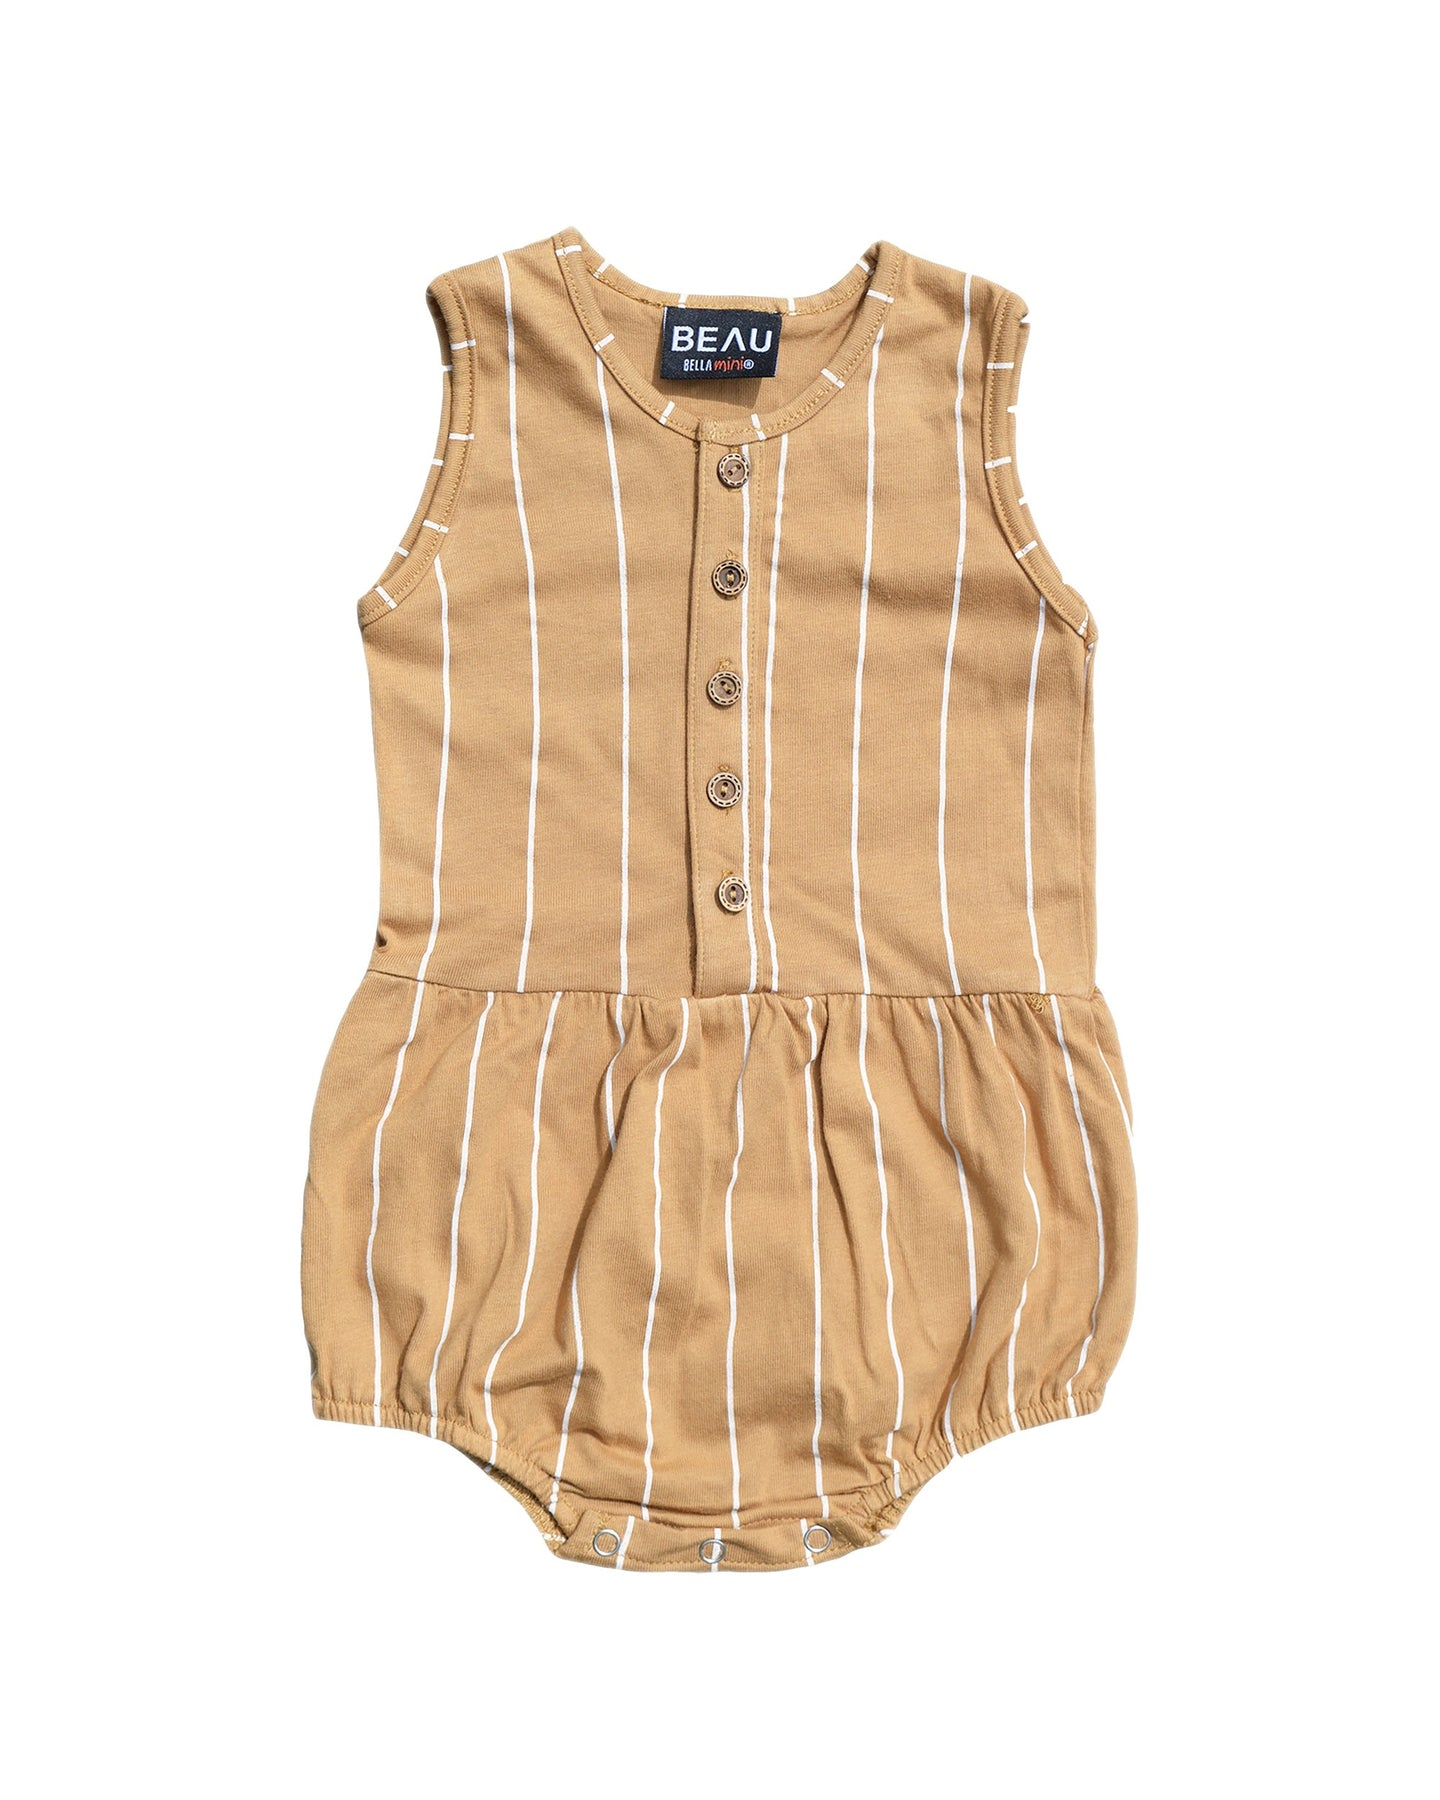 PINSTRIPE BUBBLE ROMPER - TAN